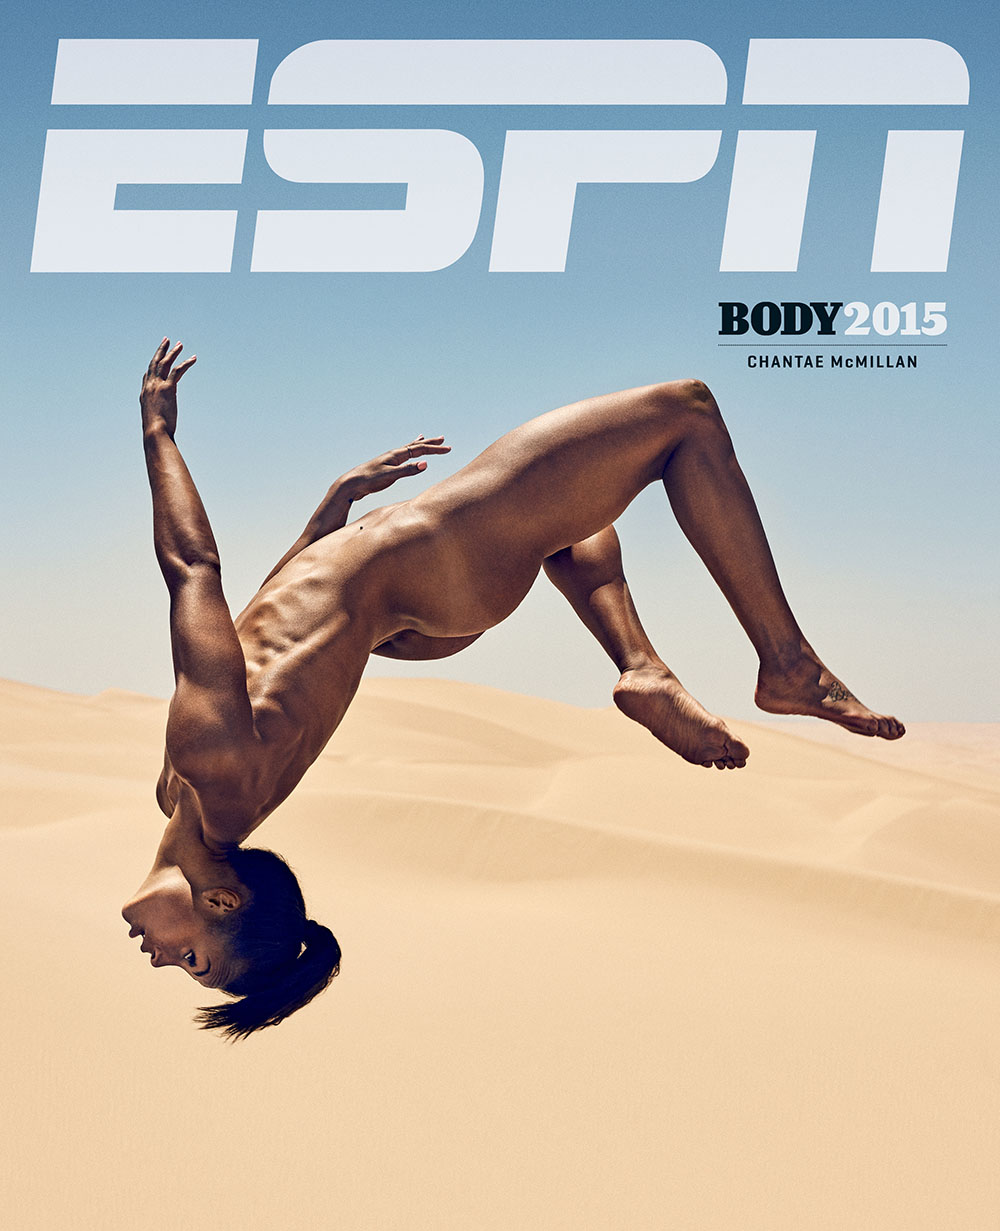 Photography News - Stunning sporty nudes by ESPN Chantae McMillan photographed by Carlos Serrao